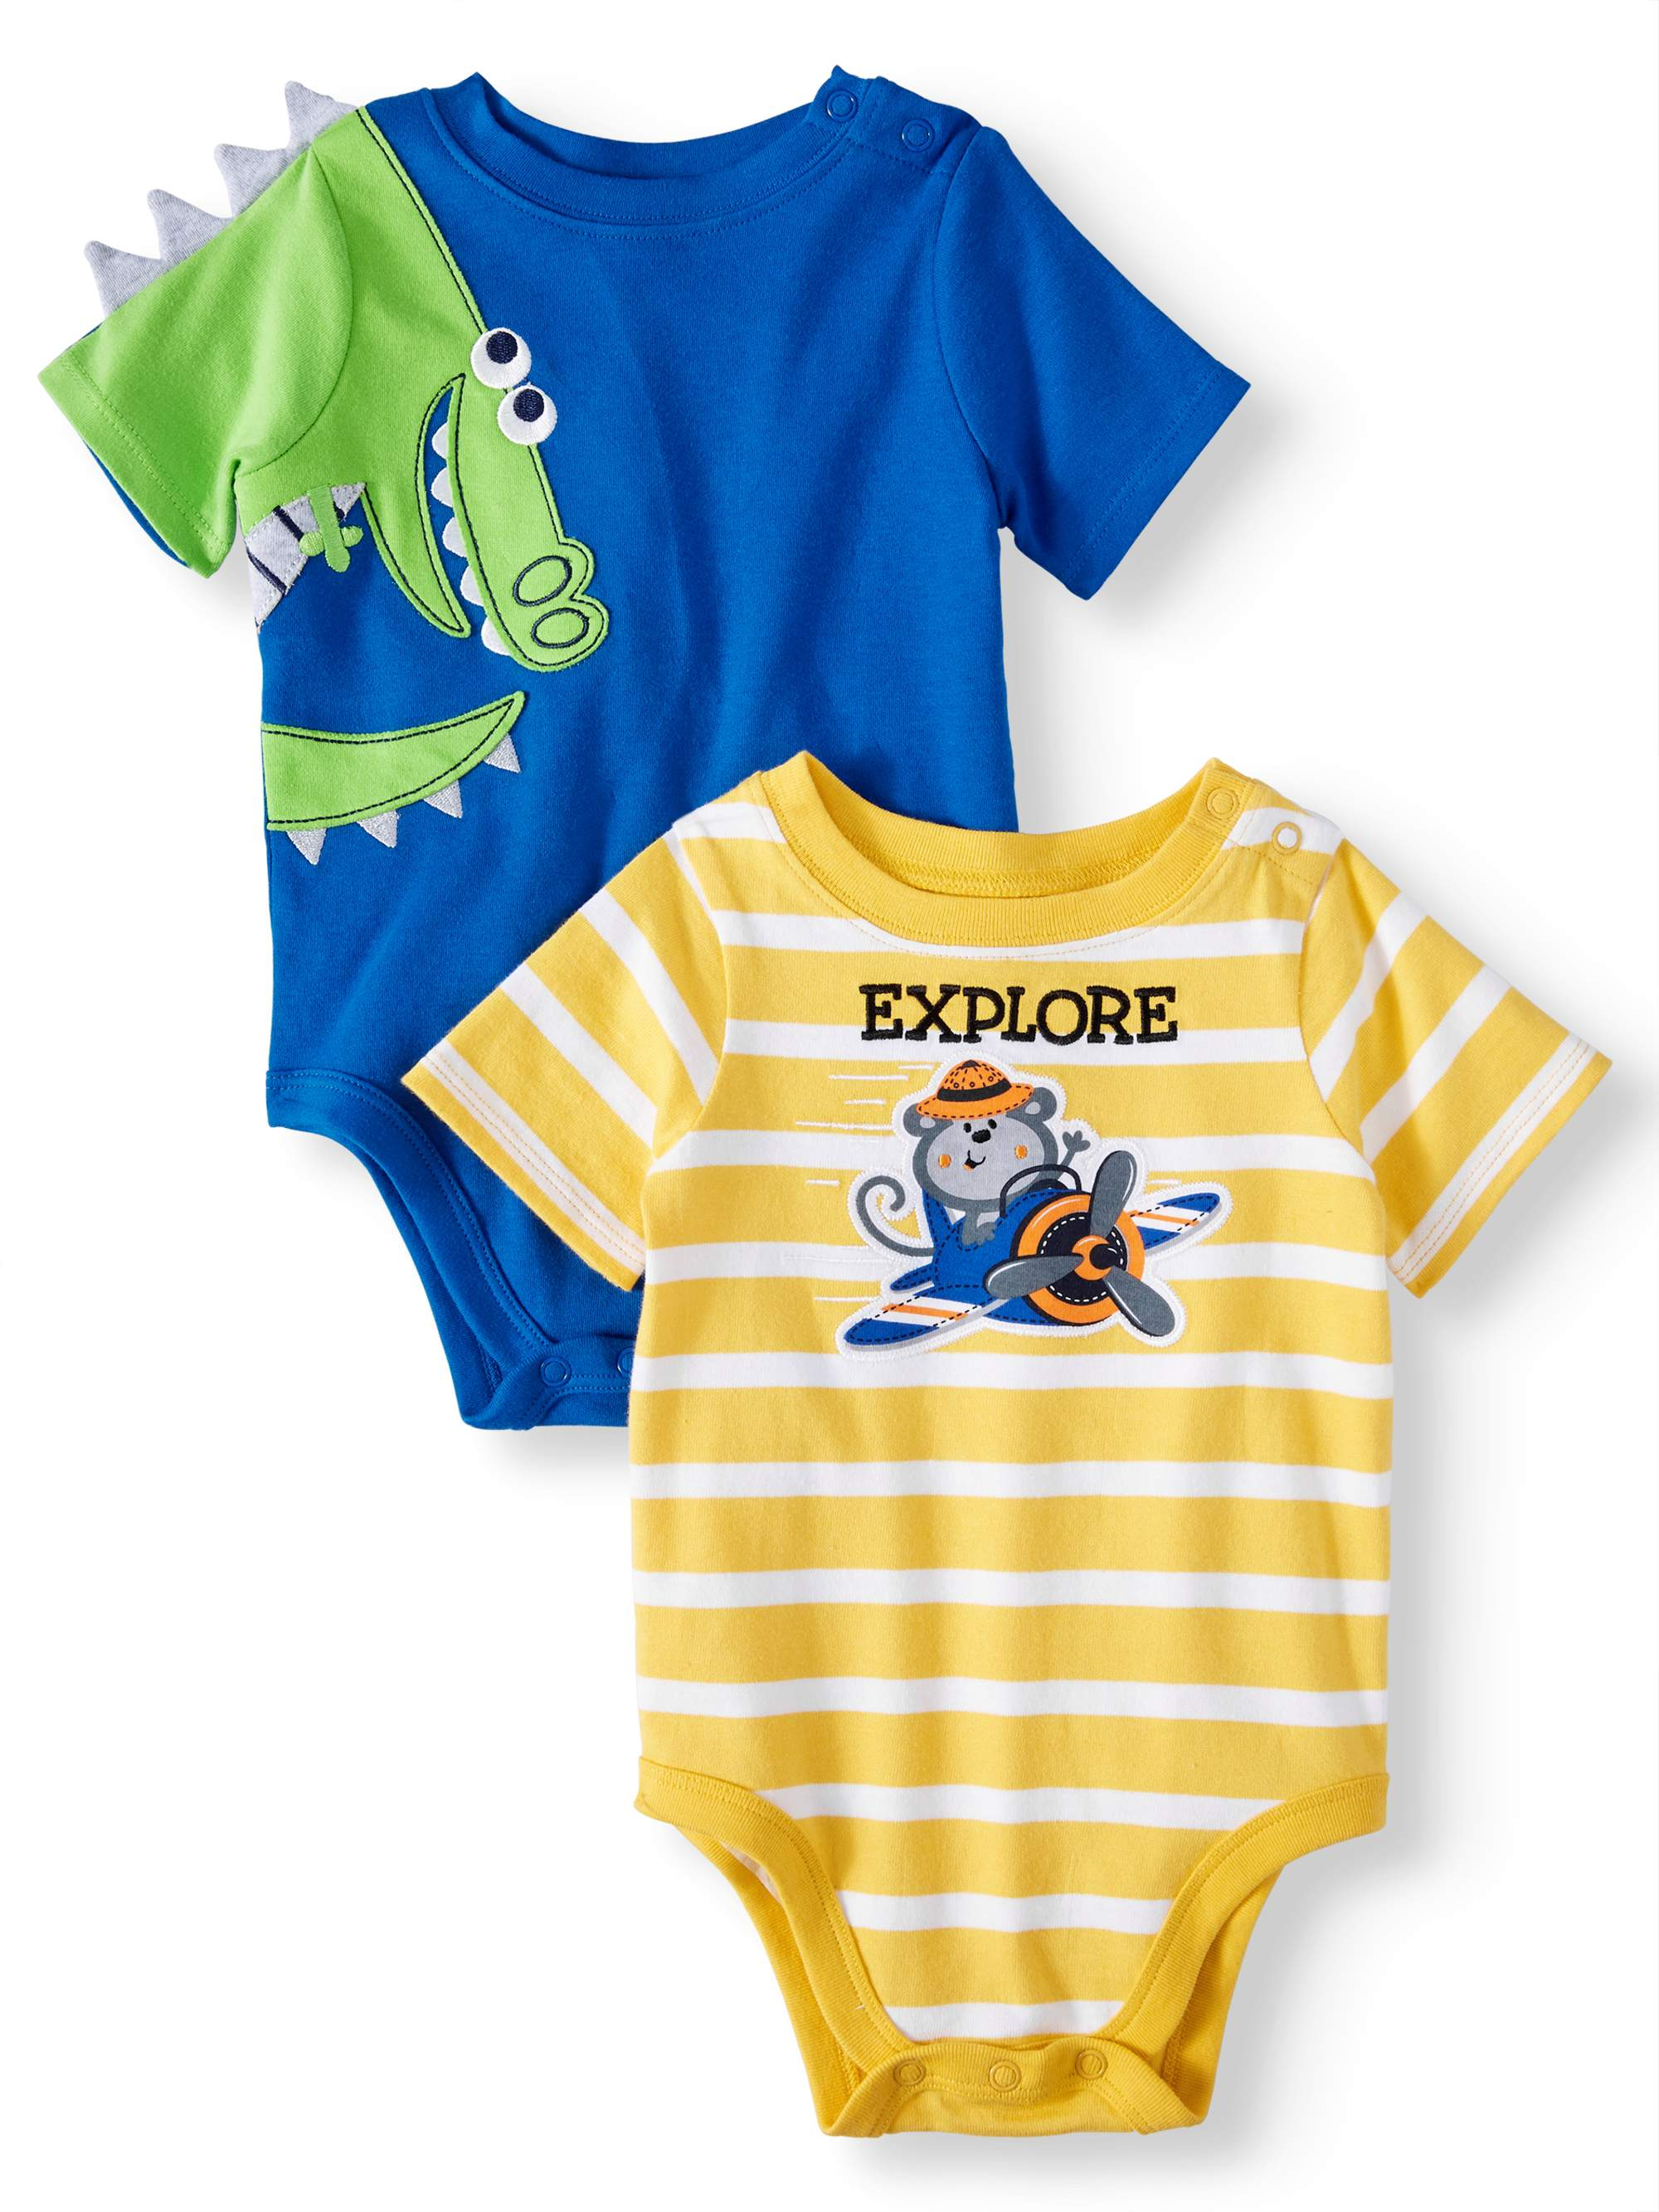 Baby Boys' 3D Critter and Striped Graphic Bodysuits, 2-Piece Multi-Pack